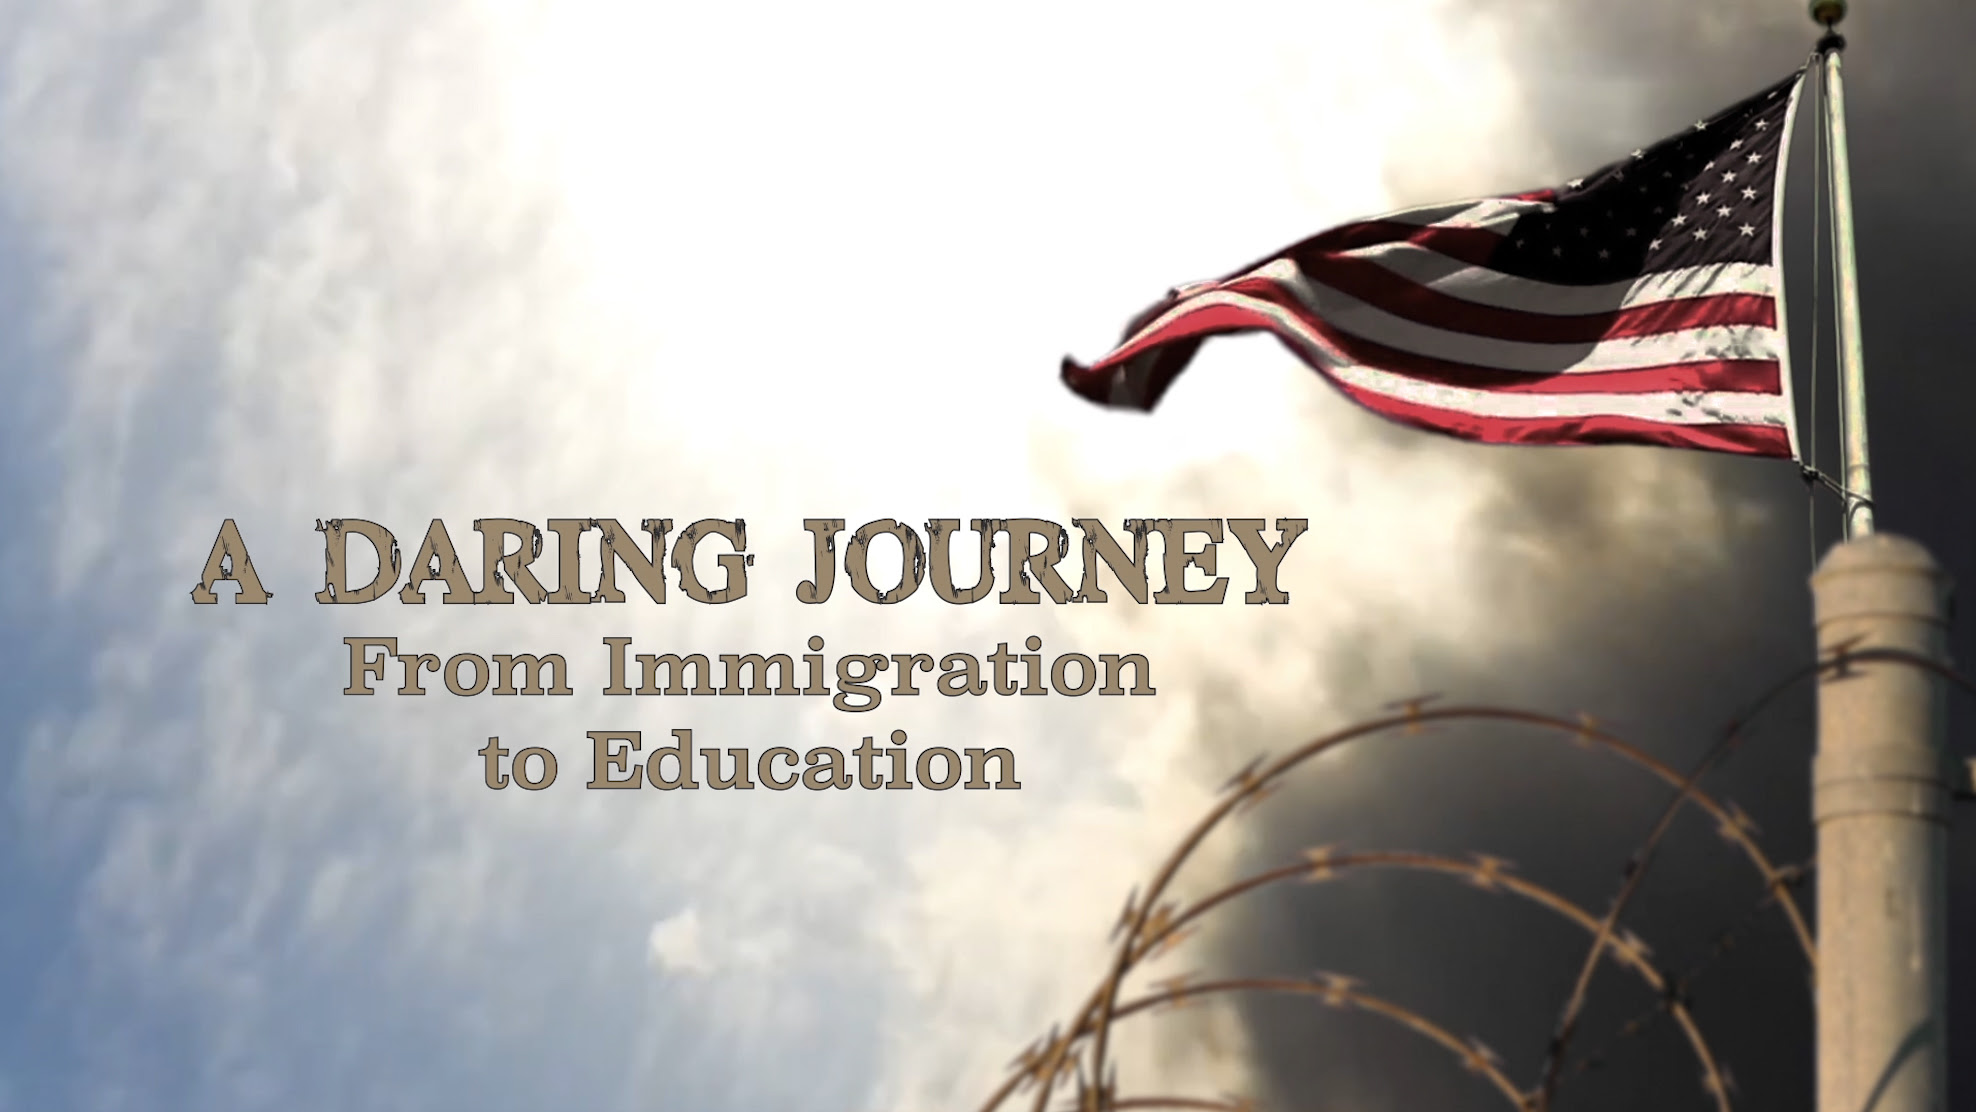 A Daring Journey: From Education to Immigration